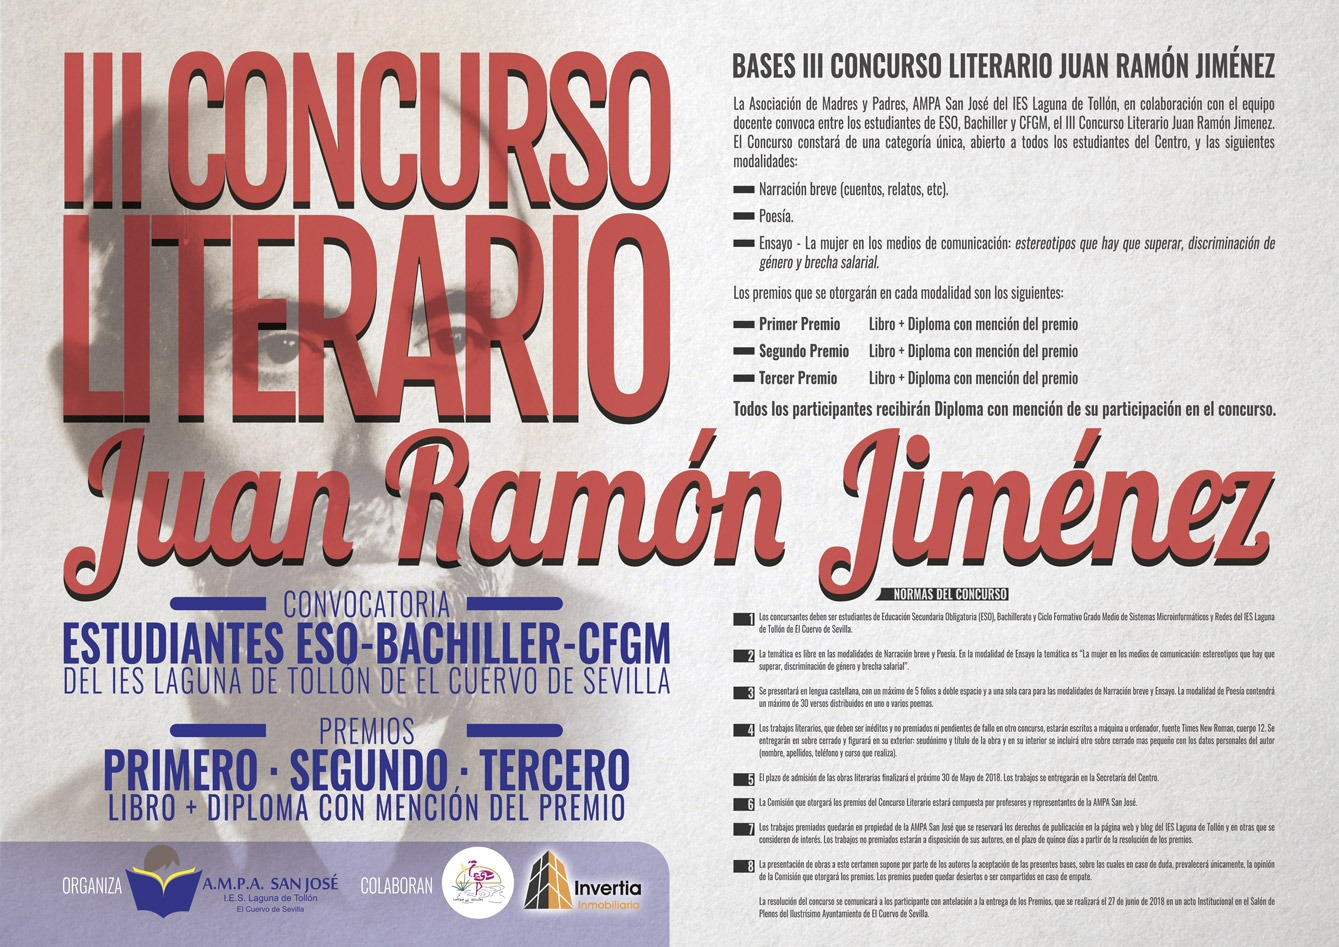 III Concurso Literario Juan Ramón Jiménez